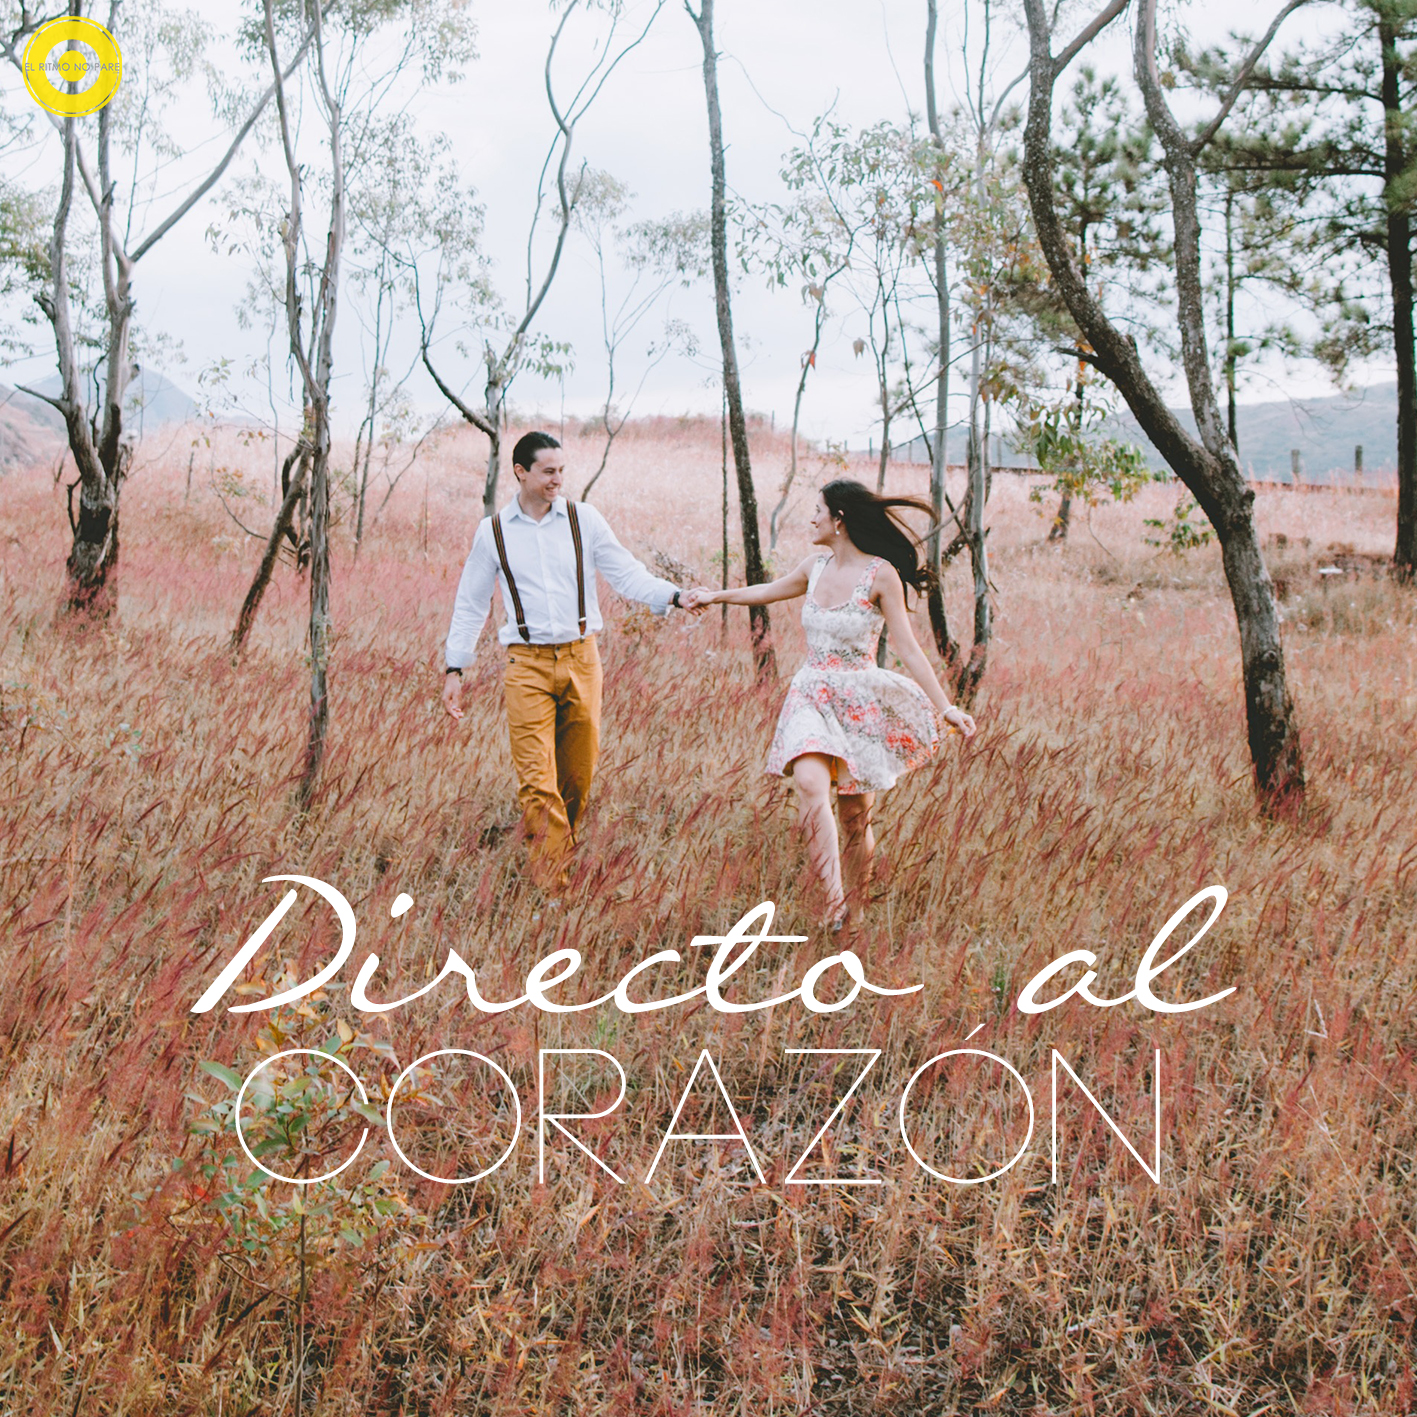 Playlist 05 - directo al corazon